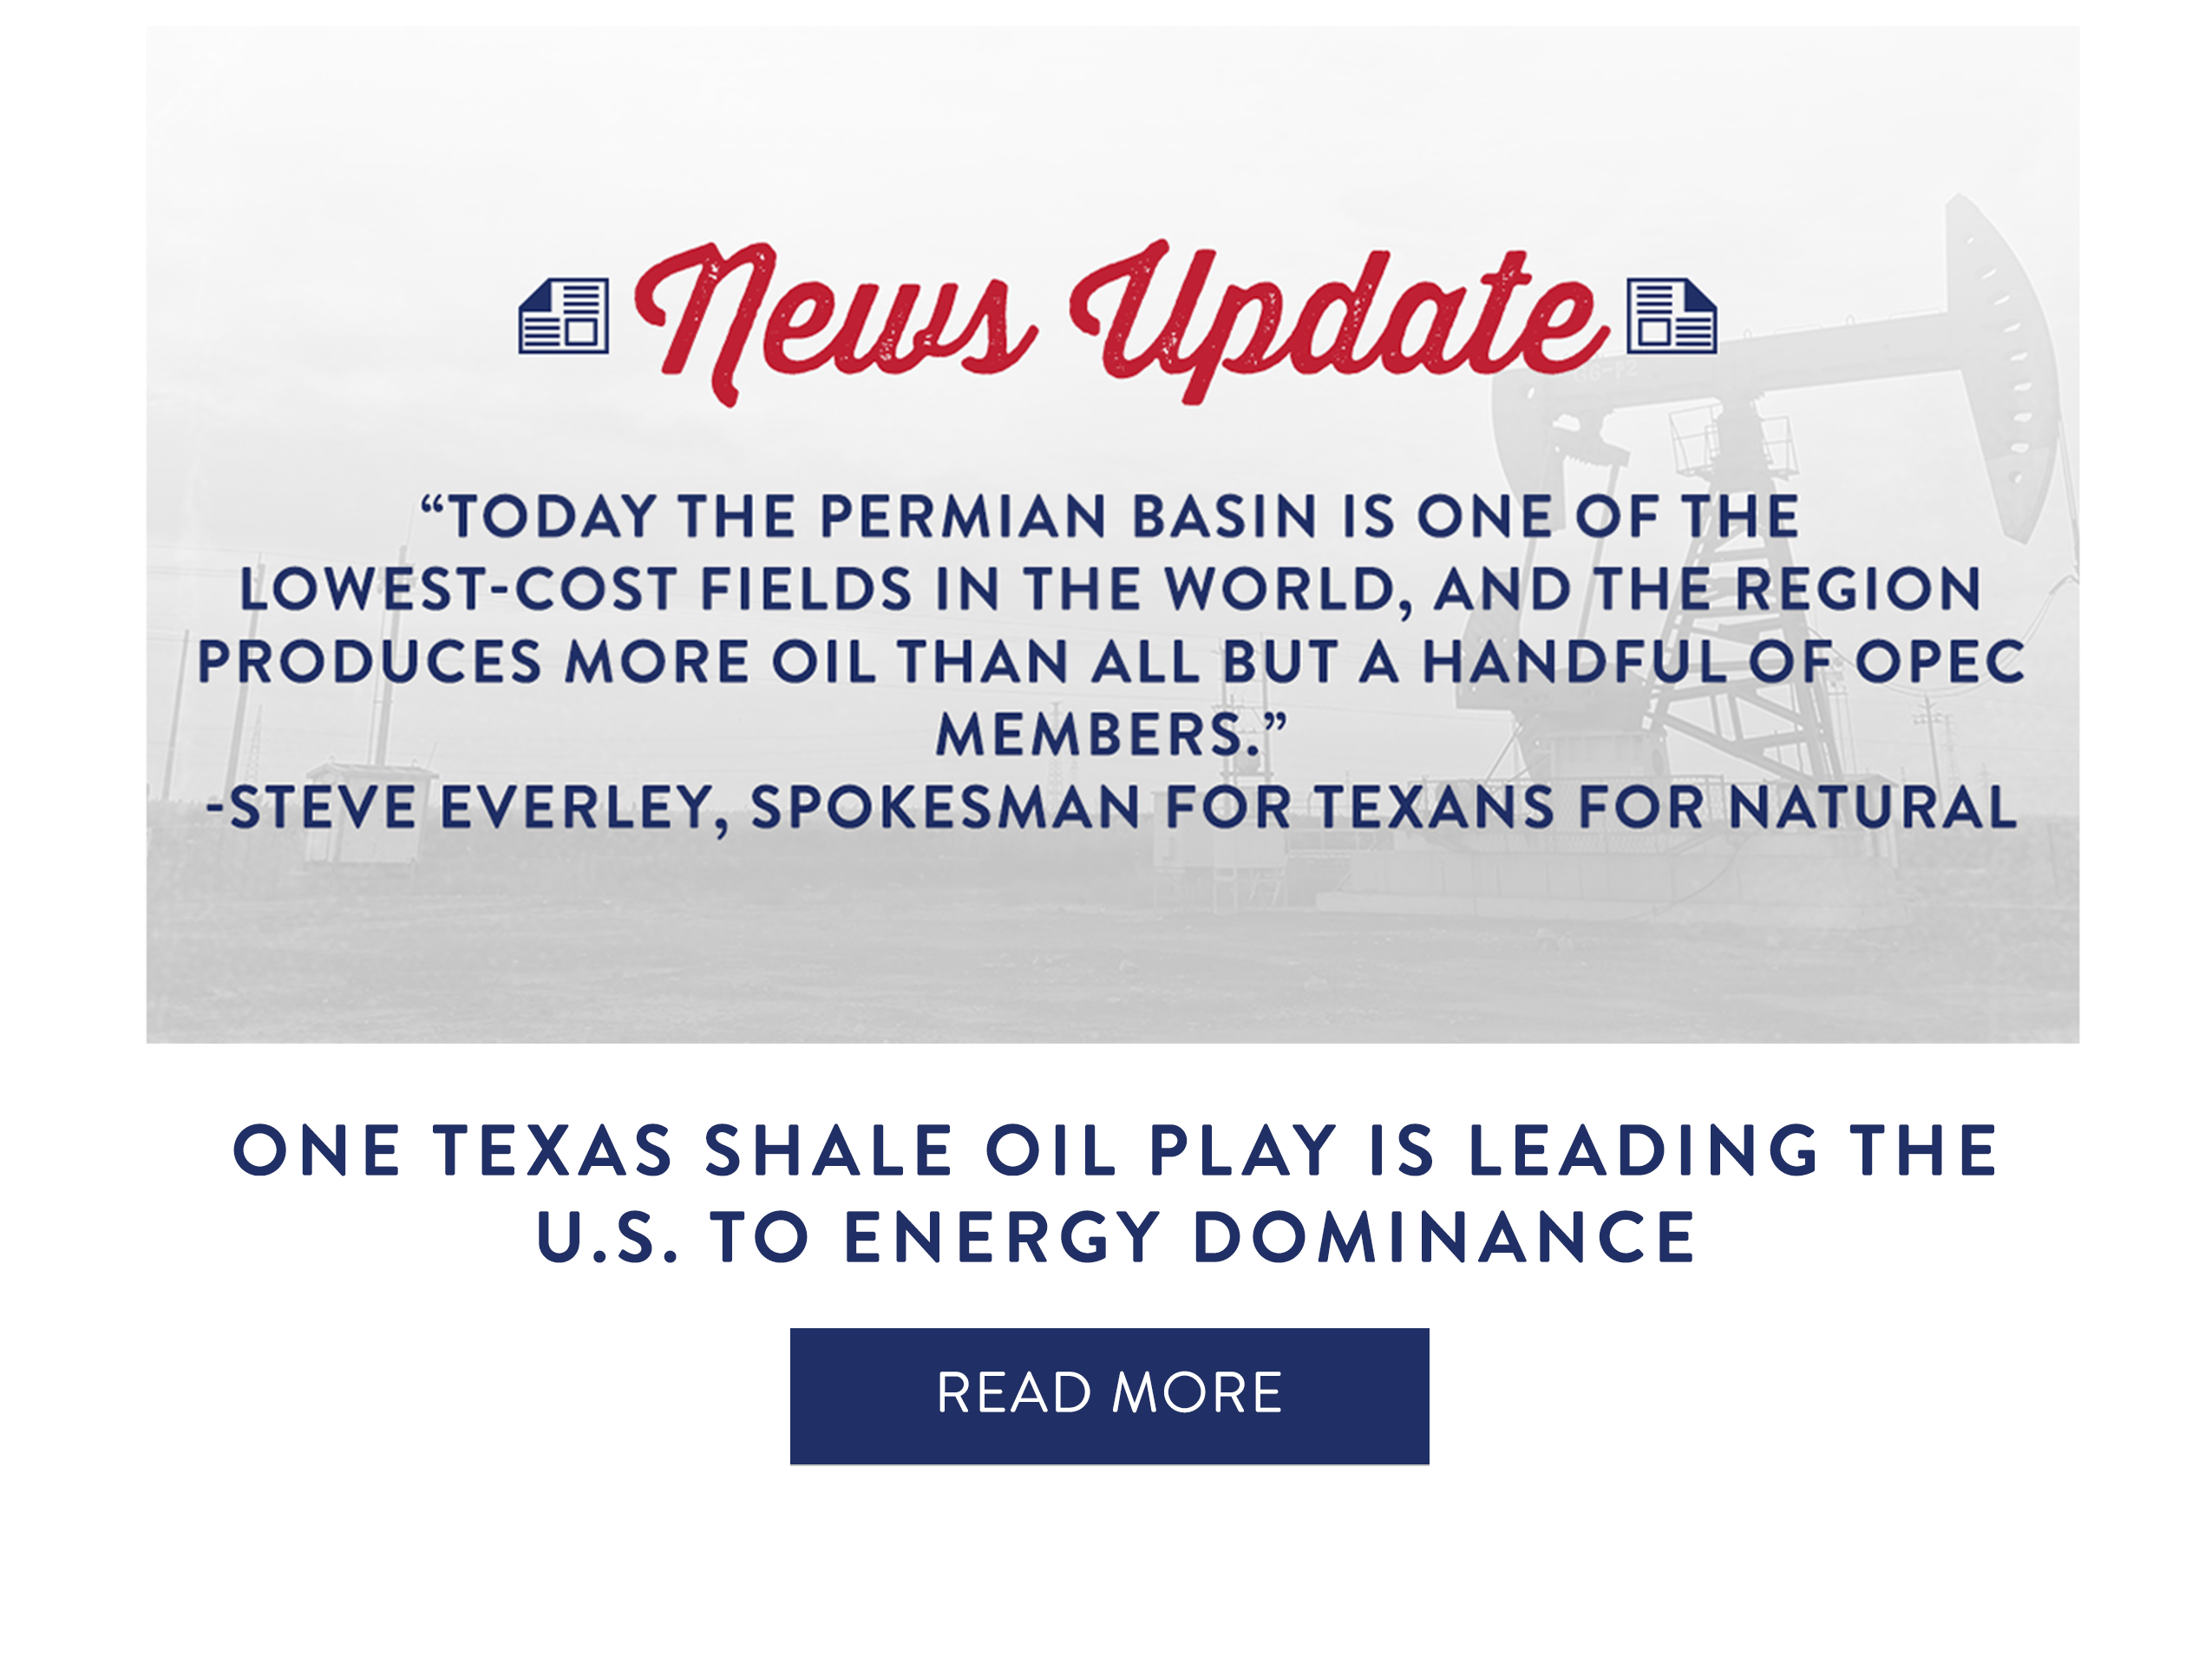 One Texas Shale Oil Play Is Leading The U.S. To Energy Dominance